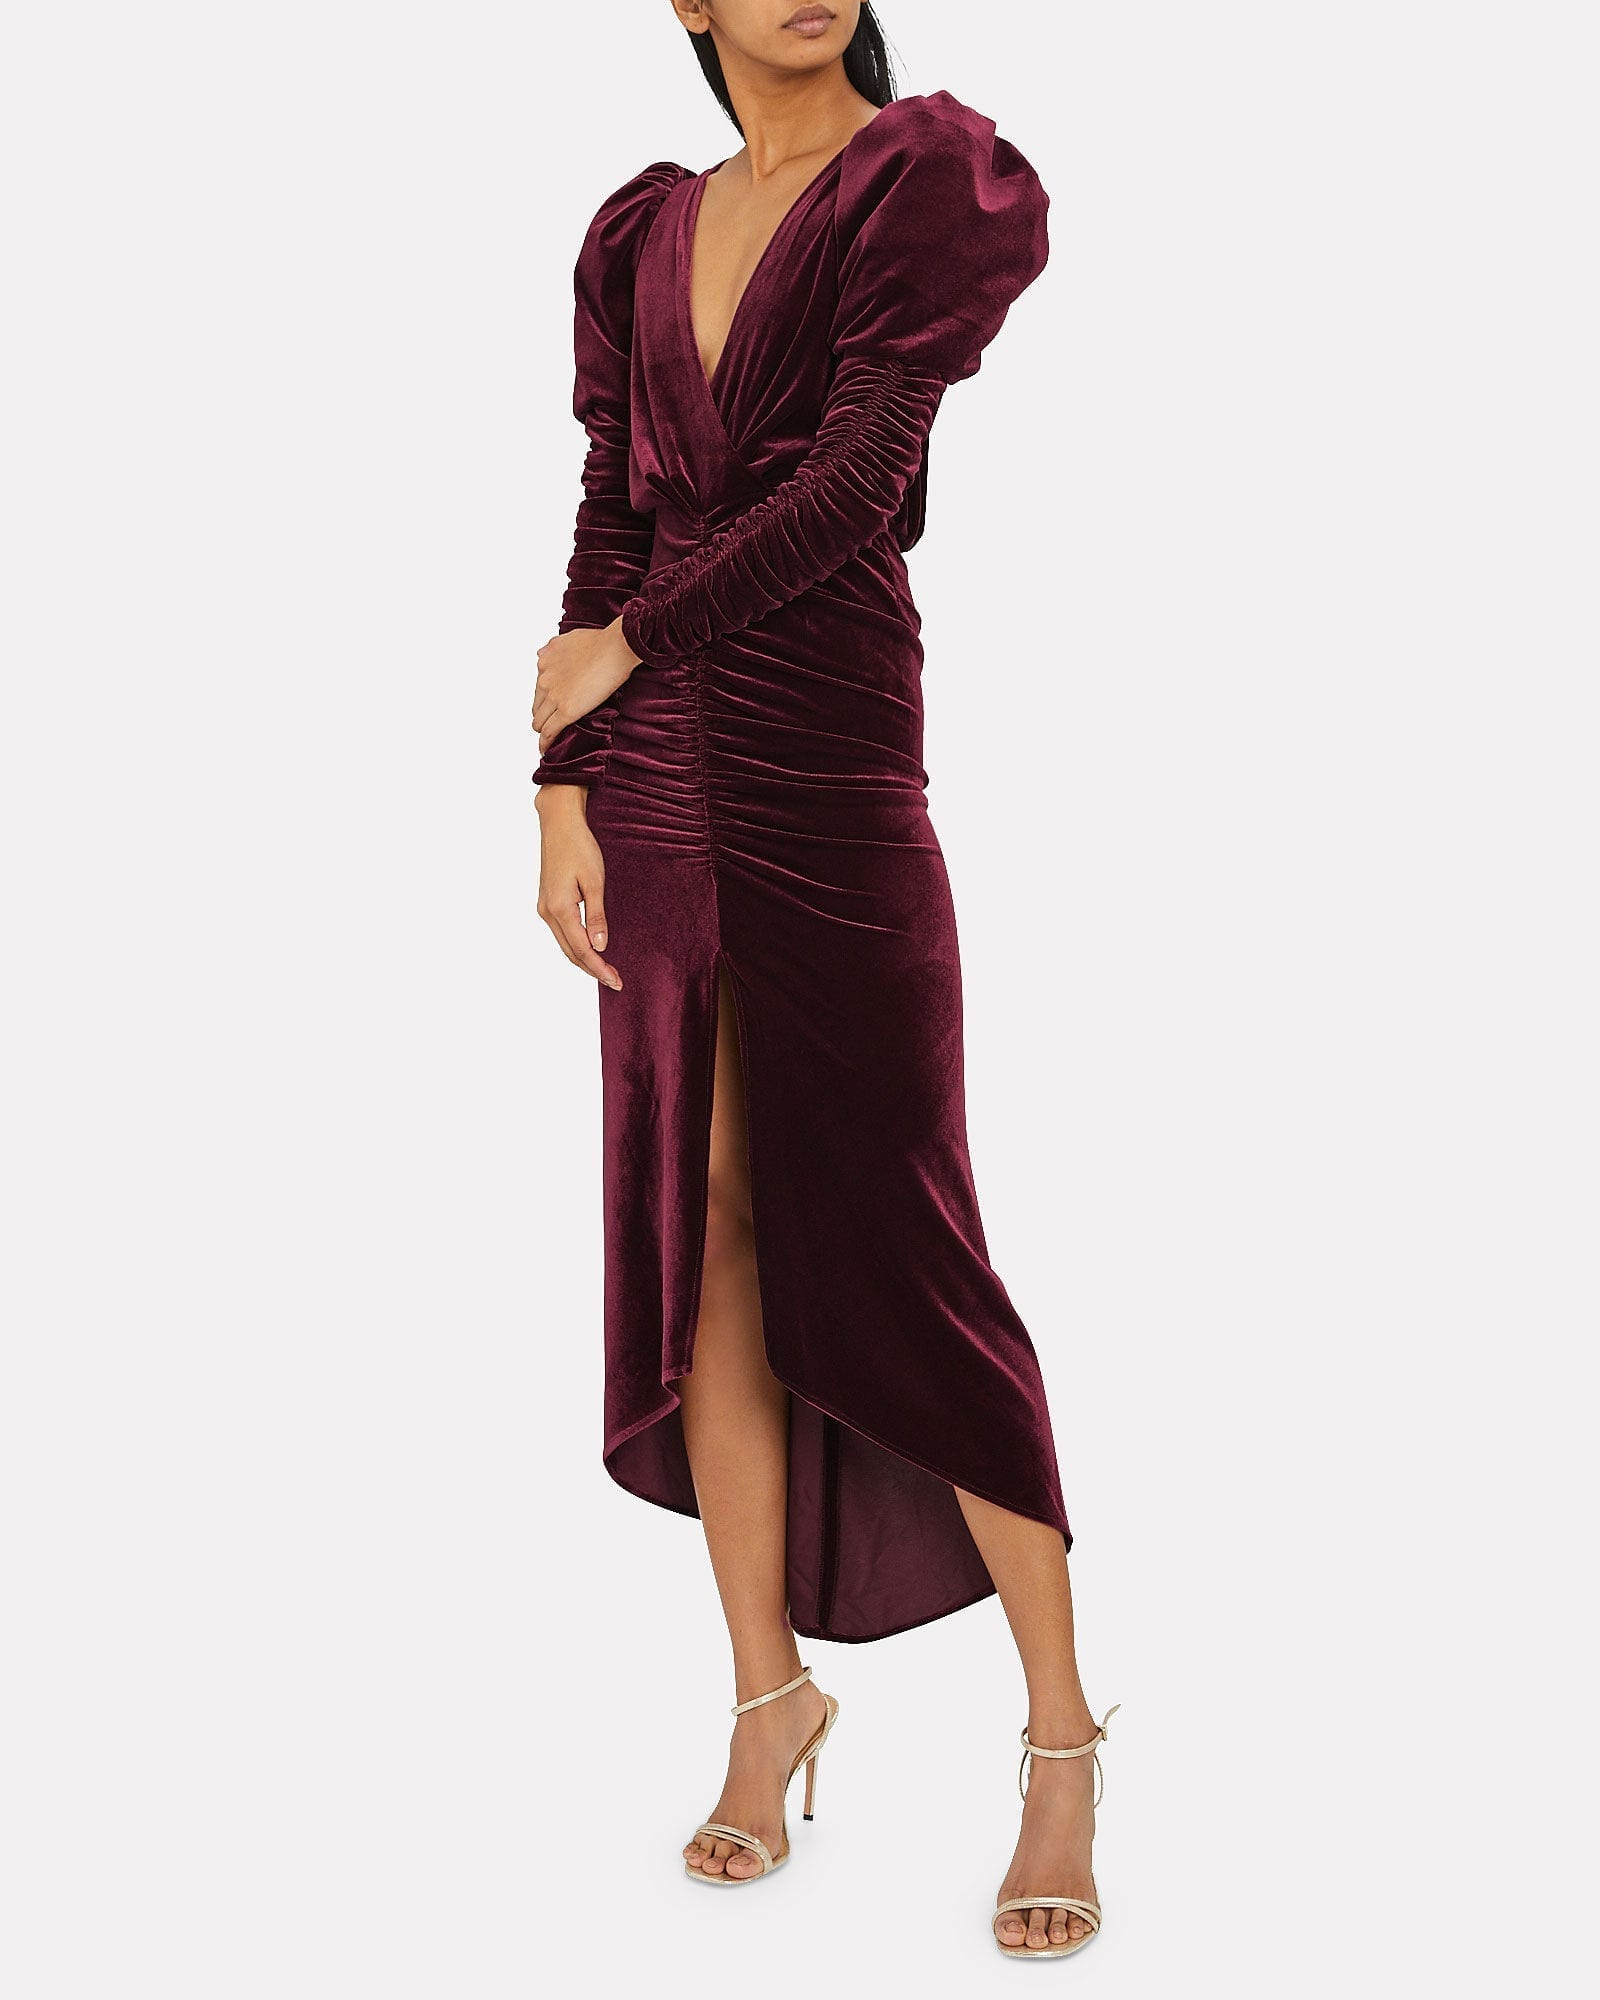 RONNY KOBO Alicia Velvet Midi Dress